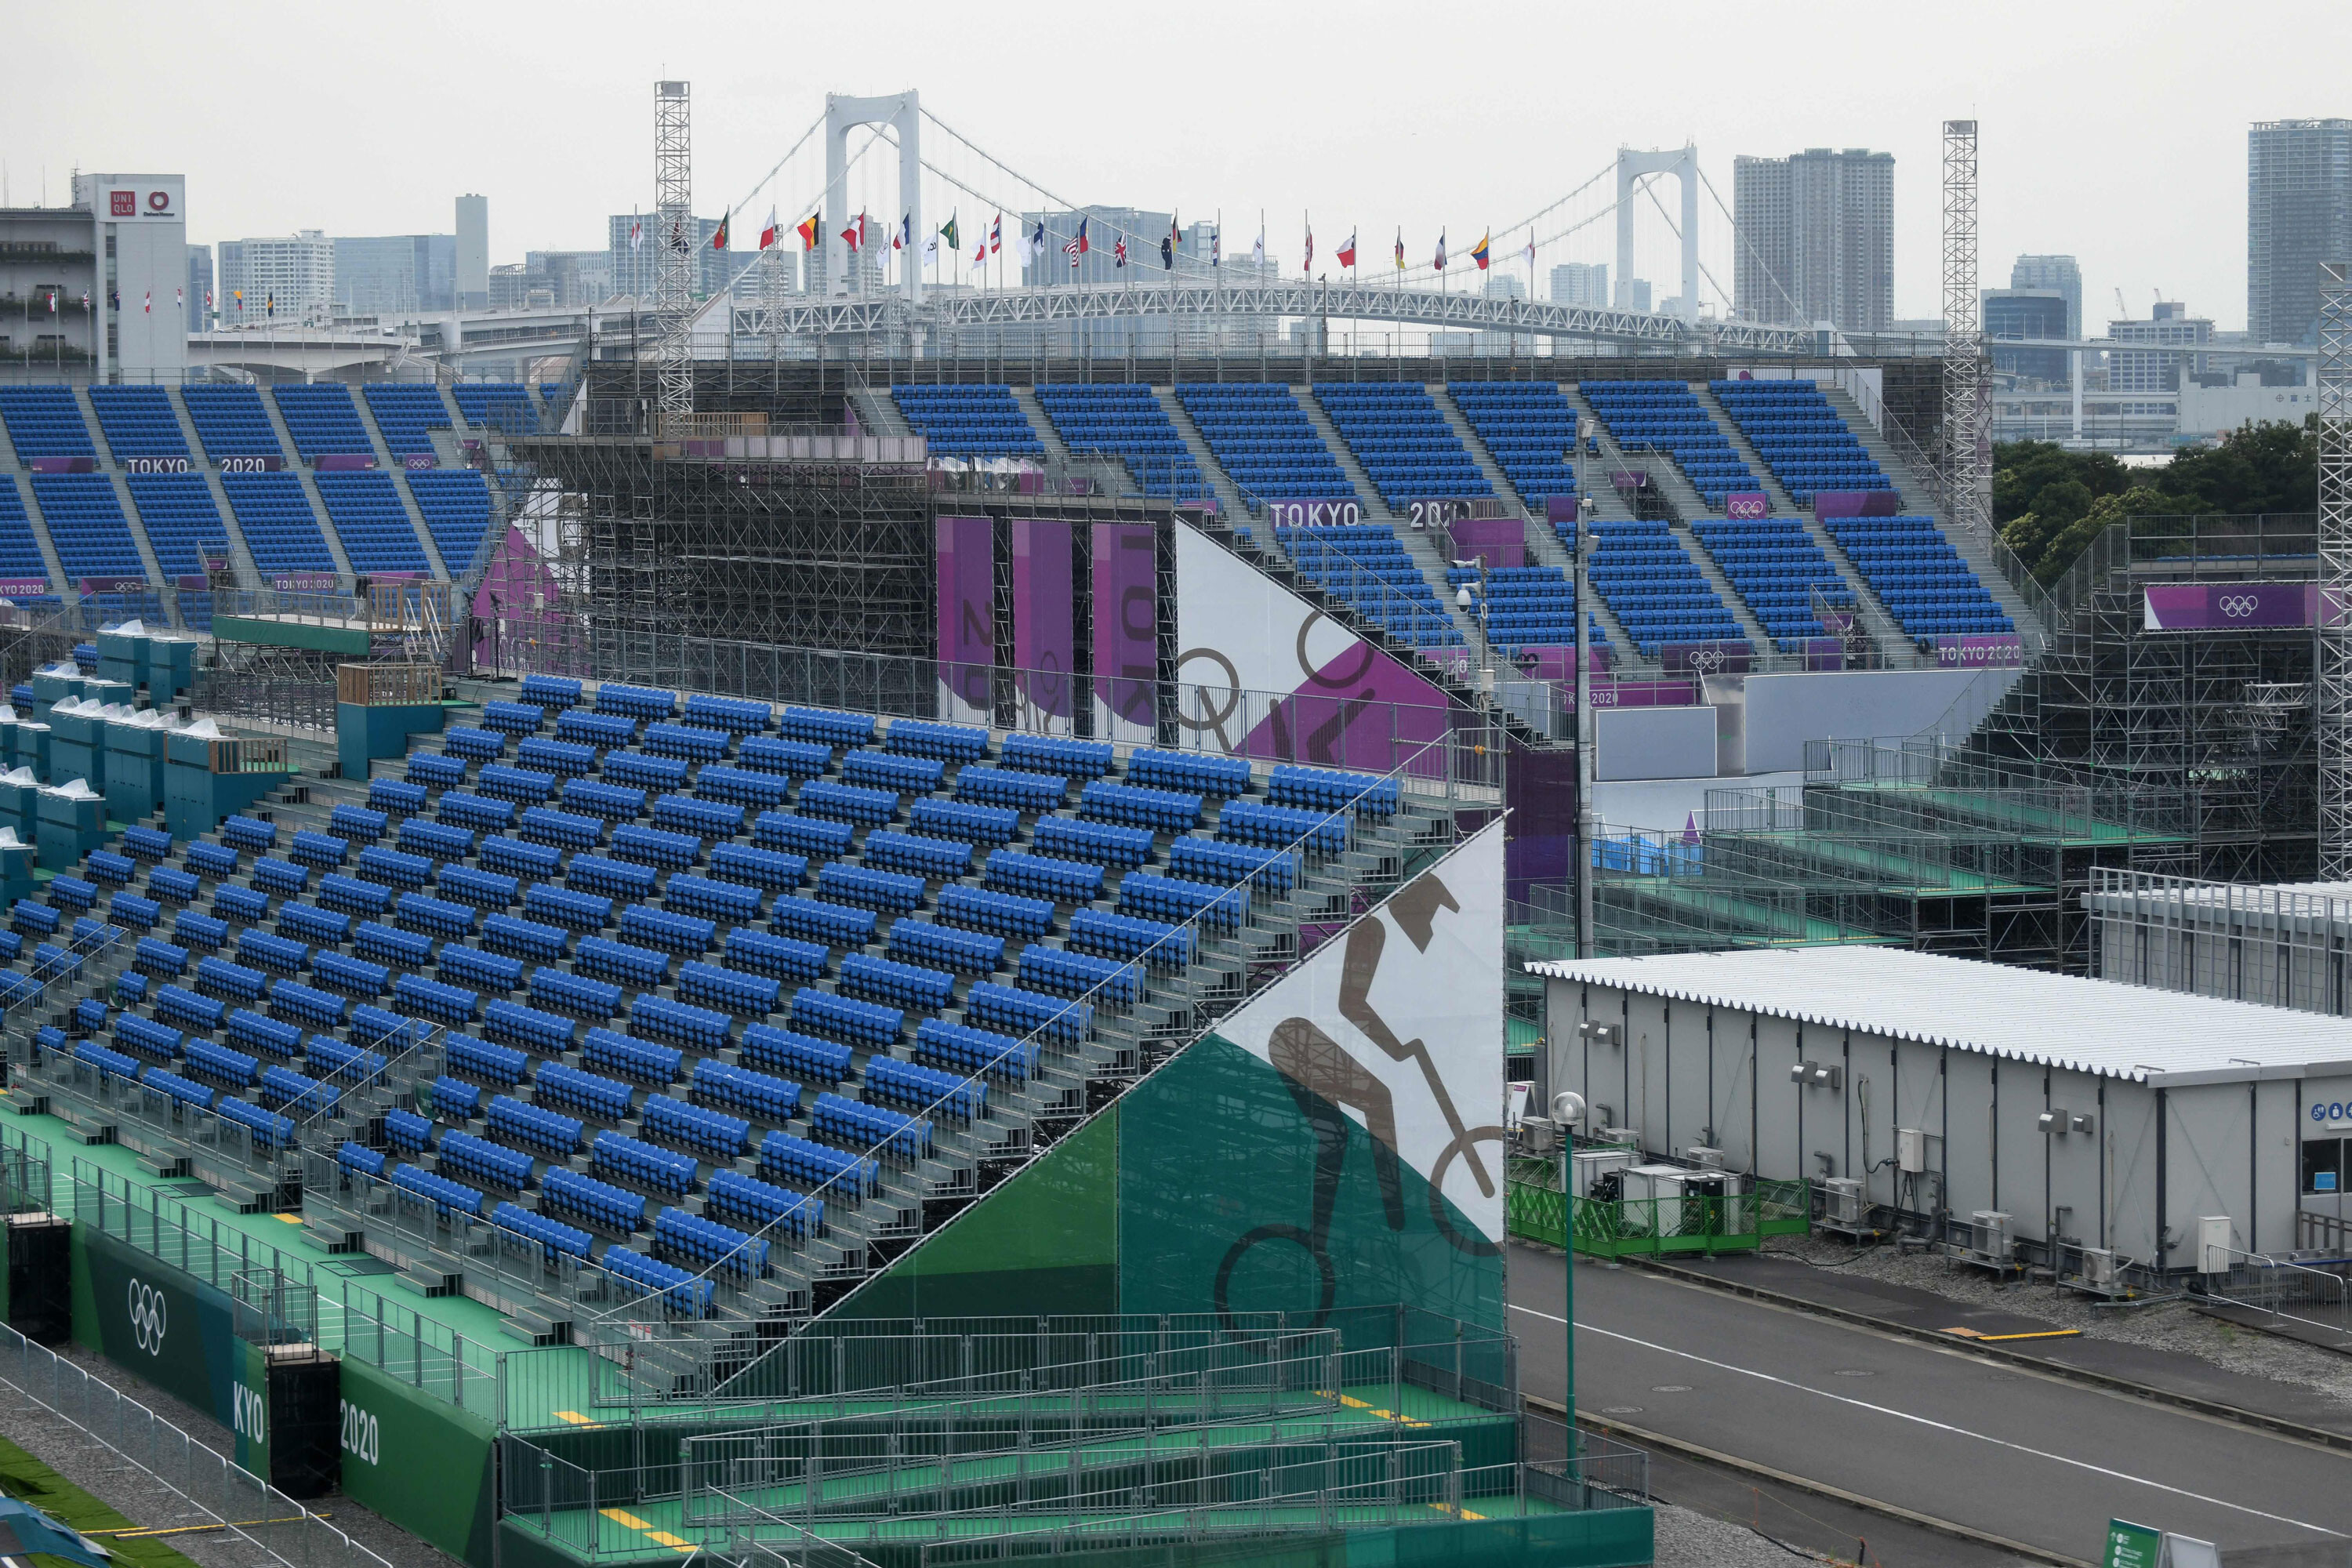 Tokyo venues for Olympics will have no spectators; Games will be held under a state of emergency